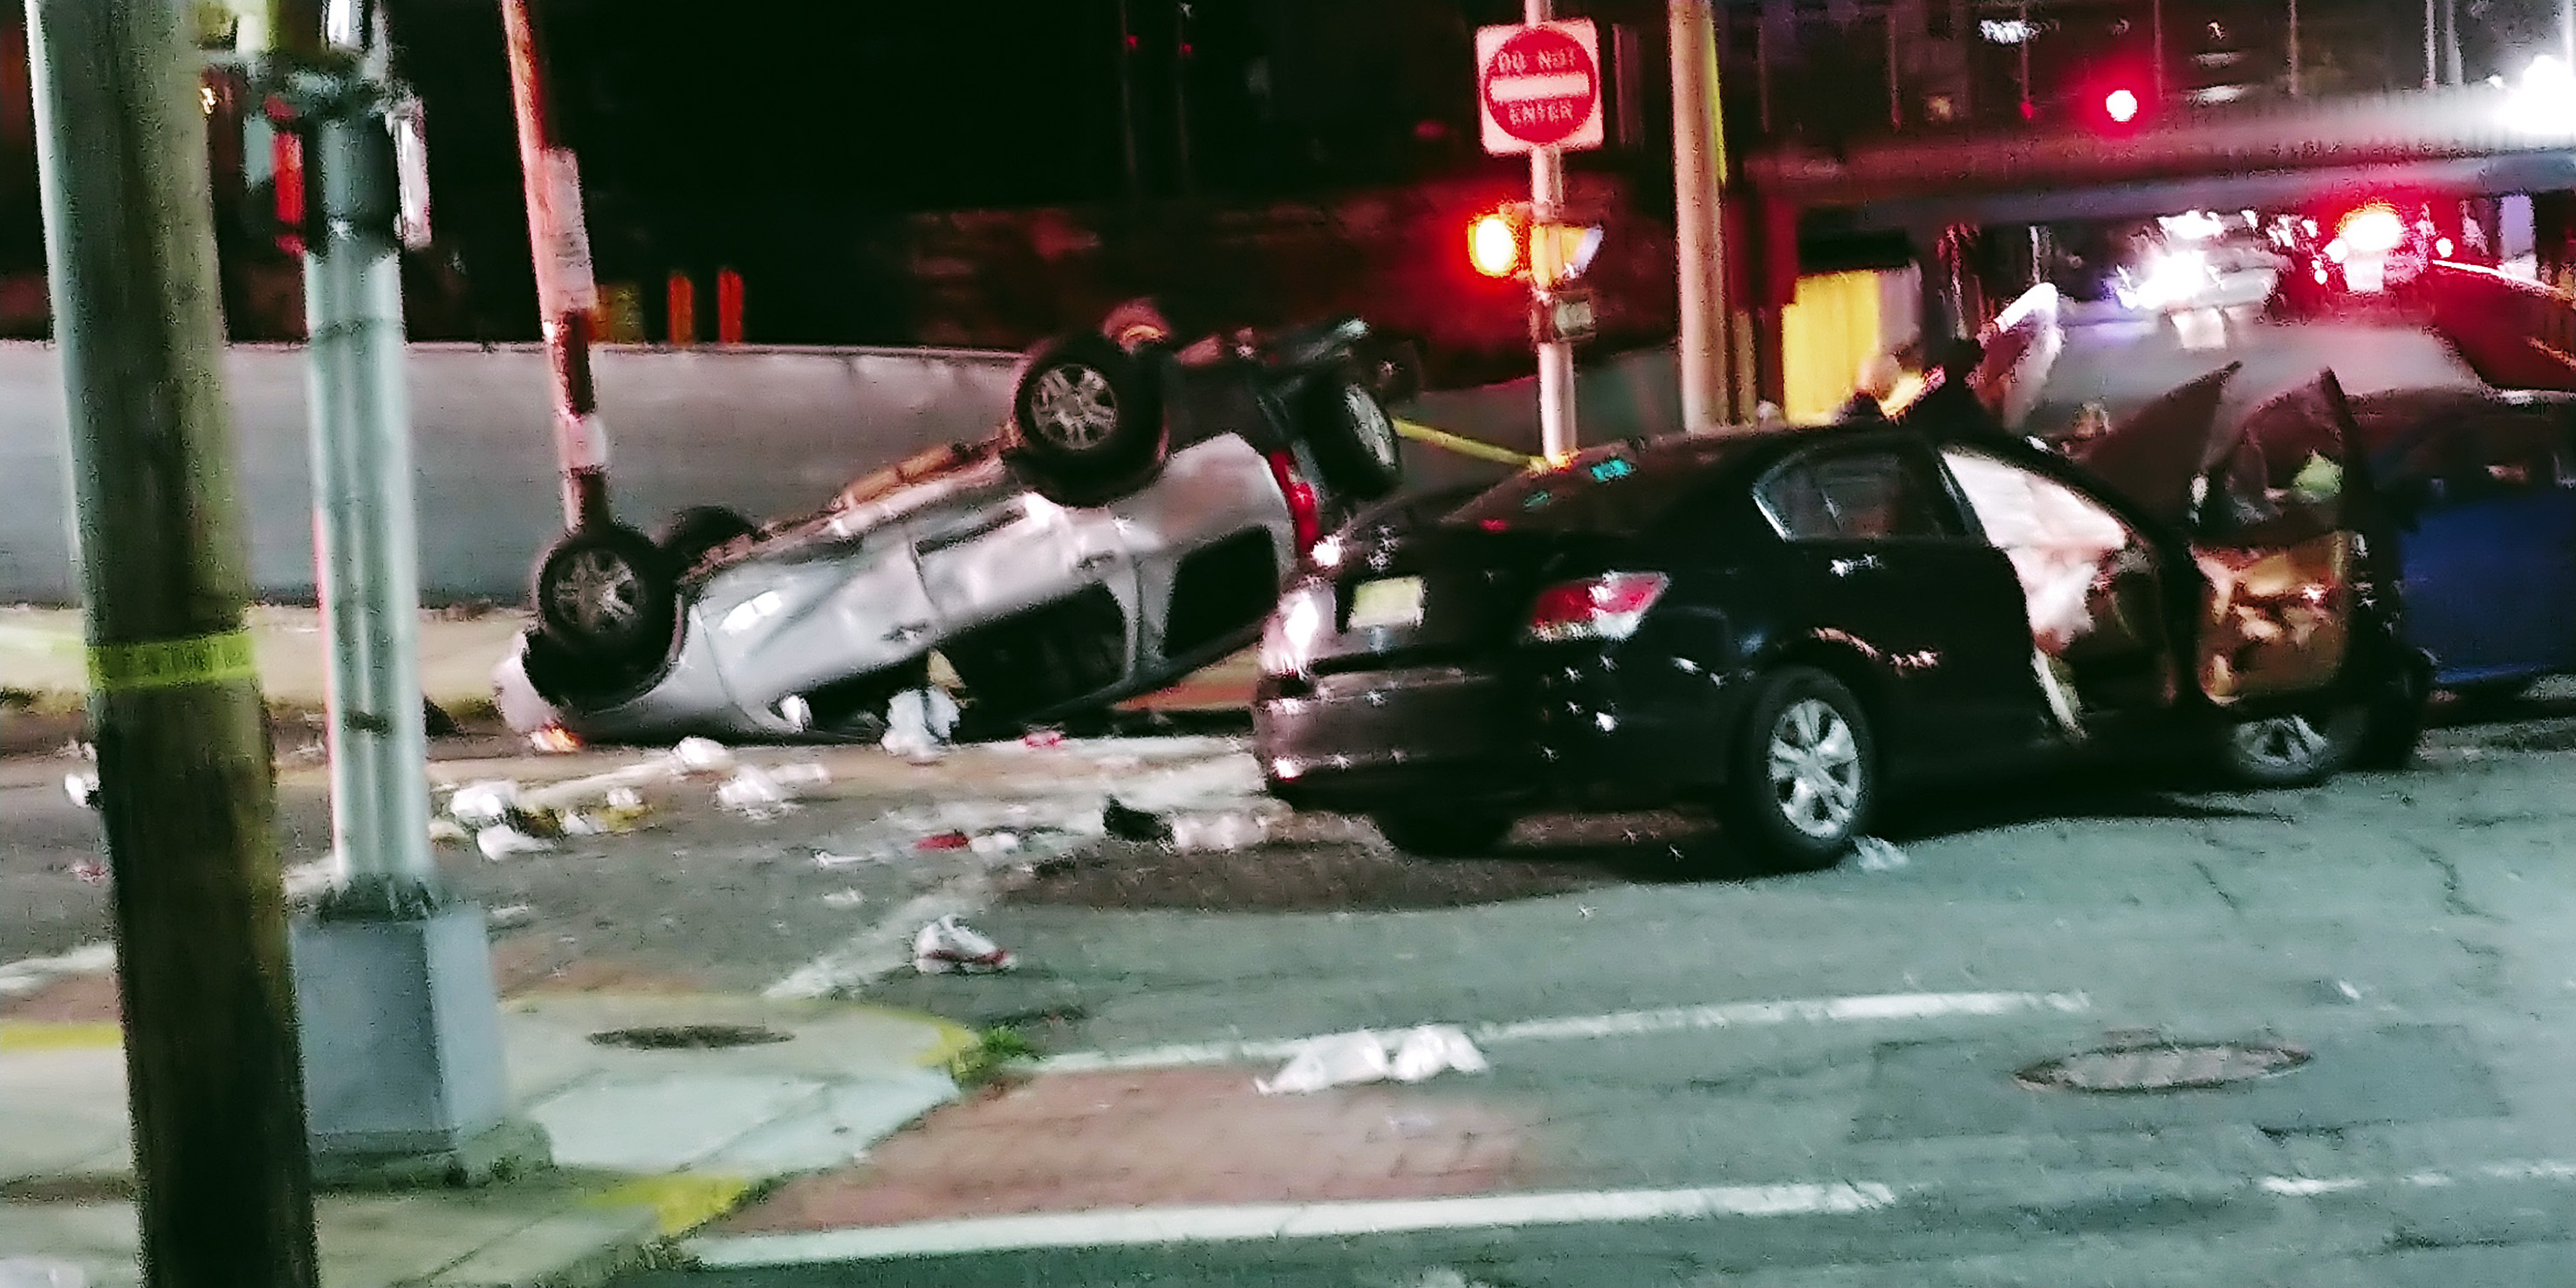 Bayonne woman dies after being ejected from car in crash: prosecutor